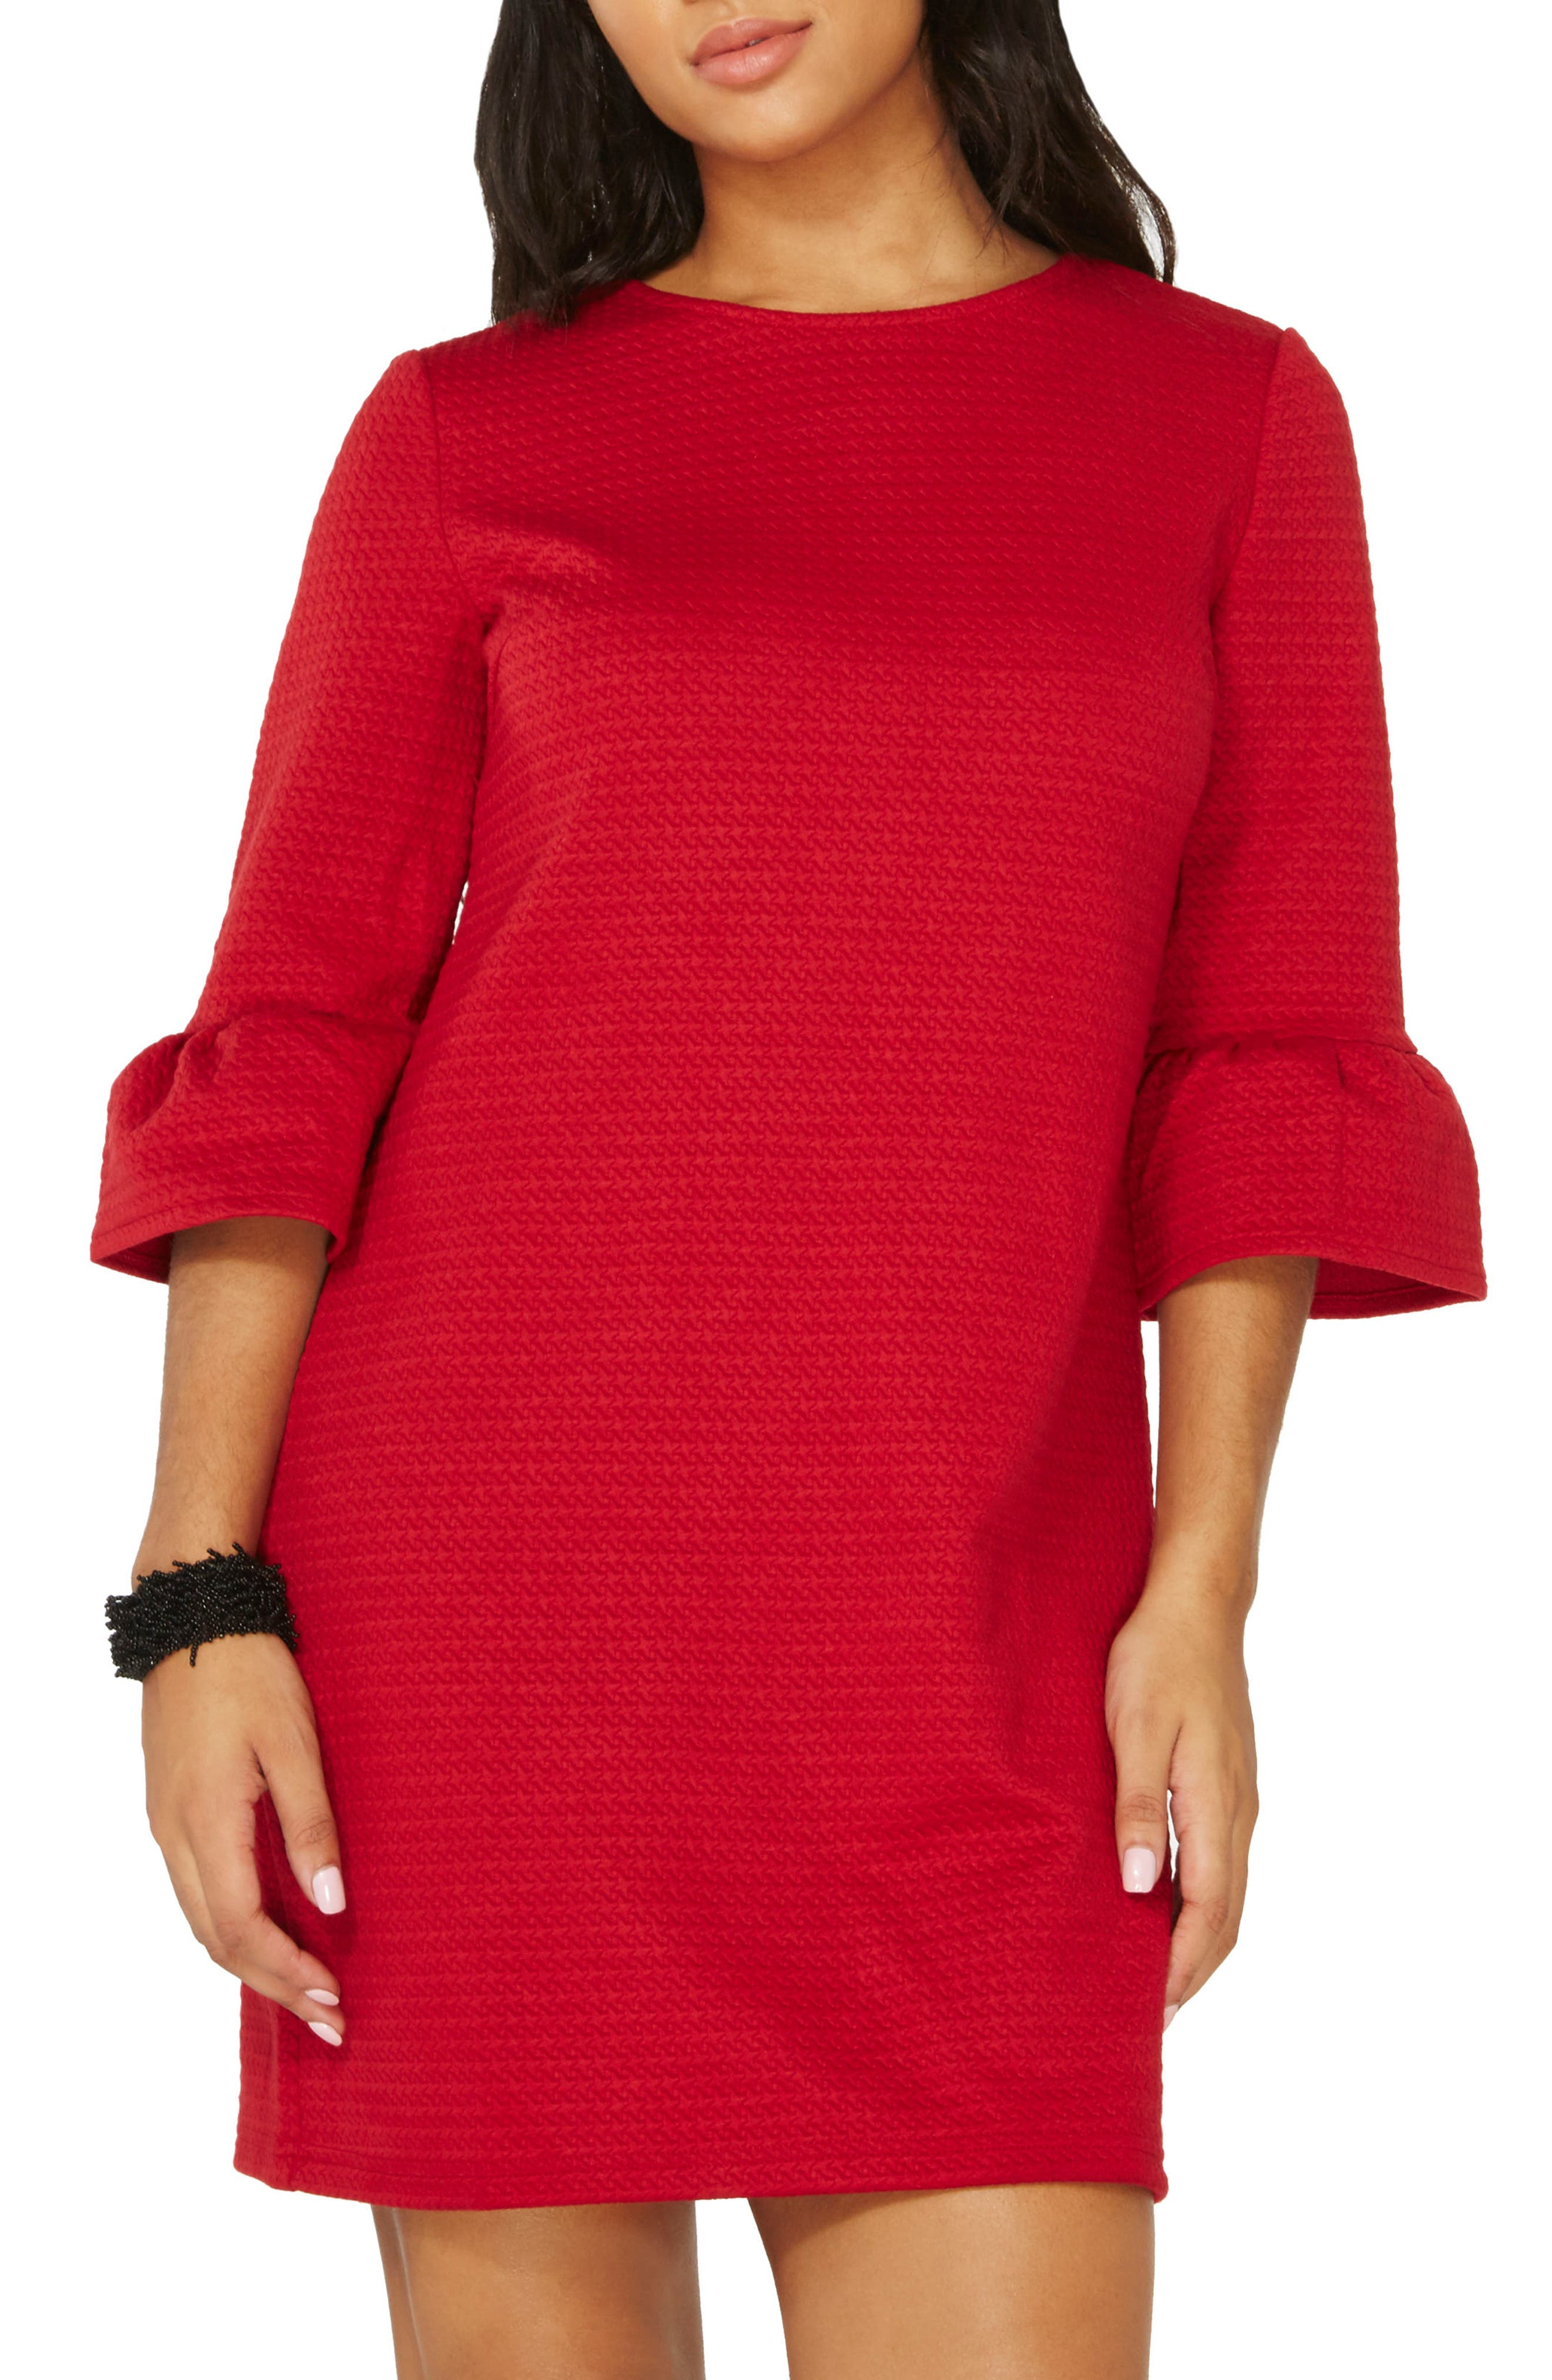 Ruffle Sleeve Shift Dress,                         Main,                         color, Red